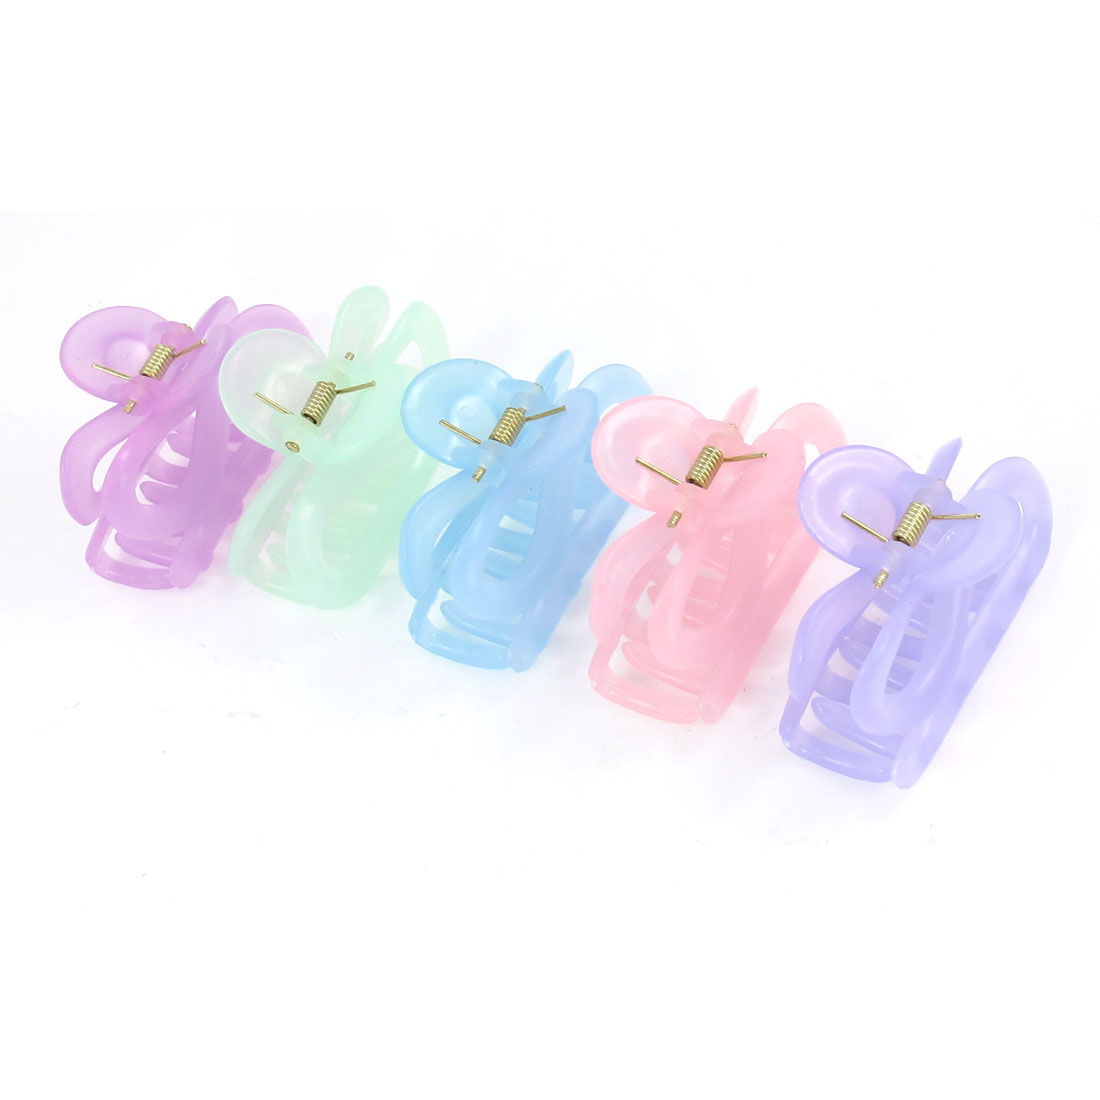 5pcs Women Assorted Color Plastic Spring Loaded Luminous Hair Claw Pin Clip